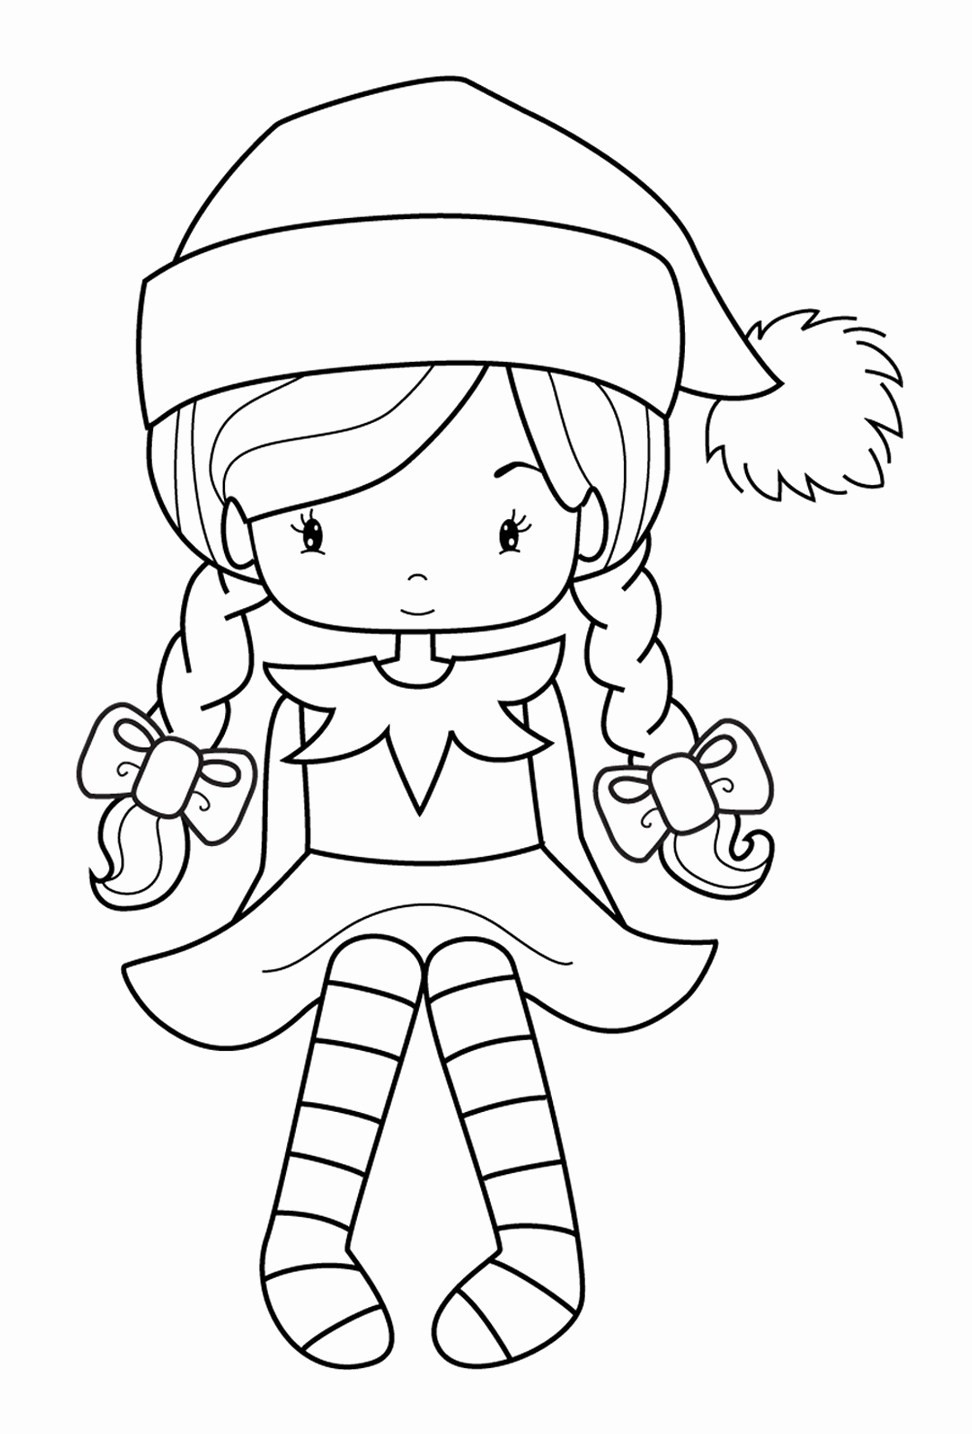 Christmas Elves Coloring Pages To Print With Elf Almashriq Co